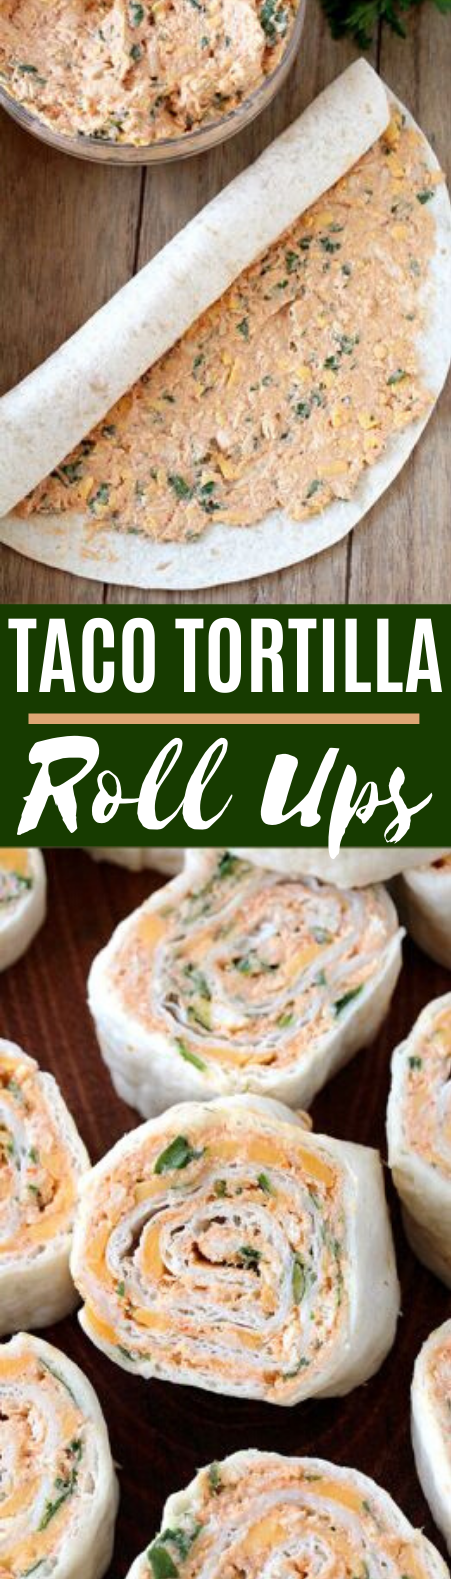 Taco Tortilla Roll Ups #appetizers #lunch #partyfood #dinner #recipes